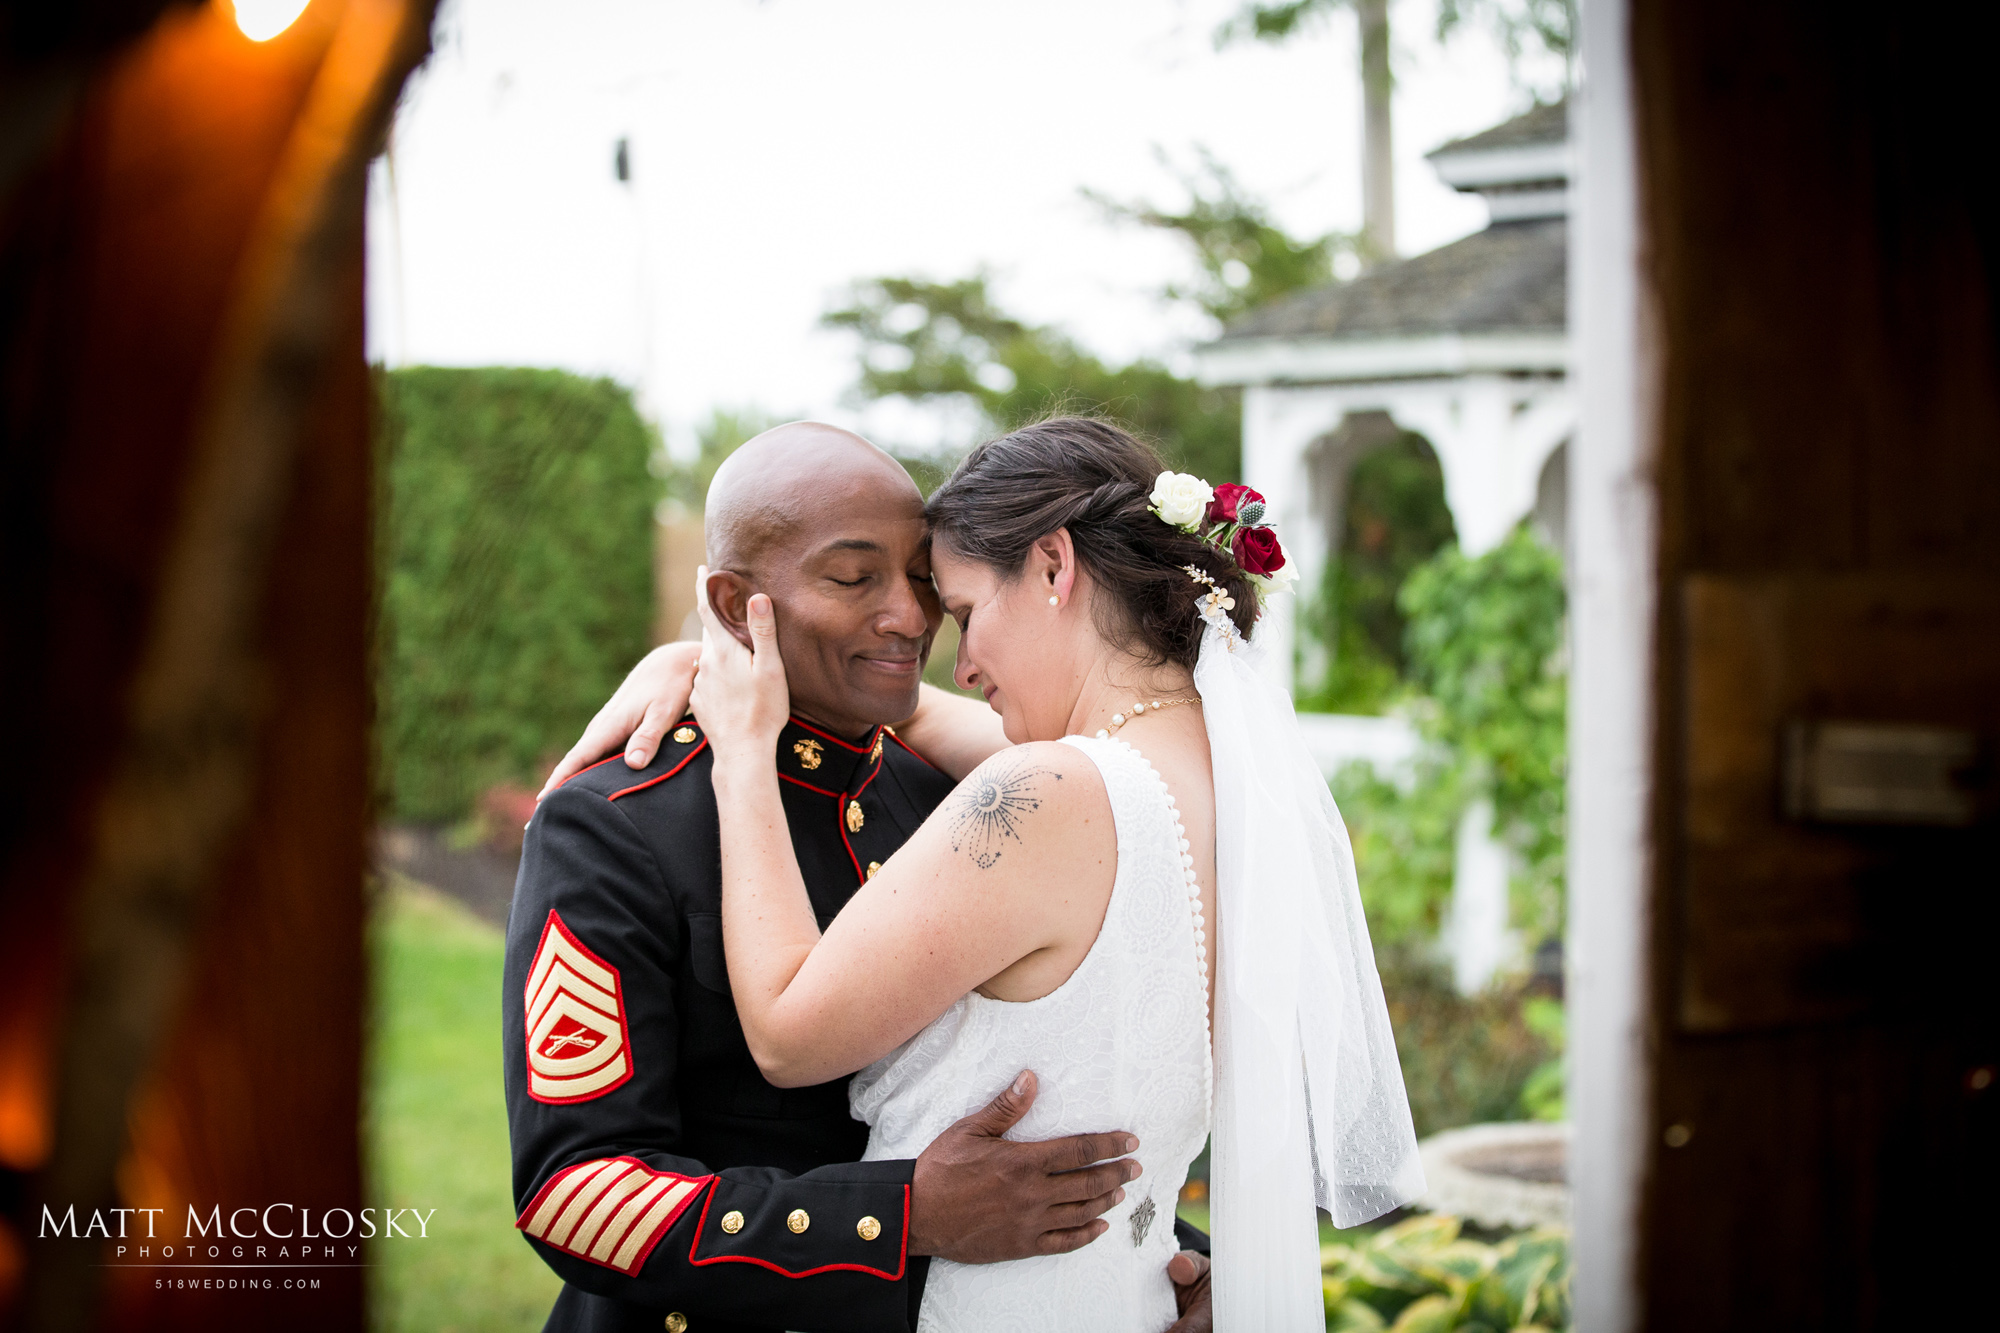 orah Erin and Emory Altamont Fine Arts Barn Wedding Photos Matt McClosky Photography 518Wedding 518Photo Wedding photographer Albany NY schenectady Saratoga Springs Troy Glens Falls Lake George Appel Inn 90 State The Knot Wedding Wire Award Winning Photographer Destination Wedding Photography Altamont wedding Till last dance